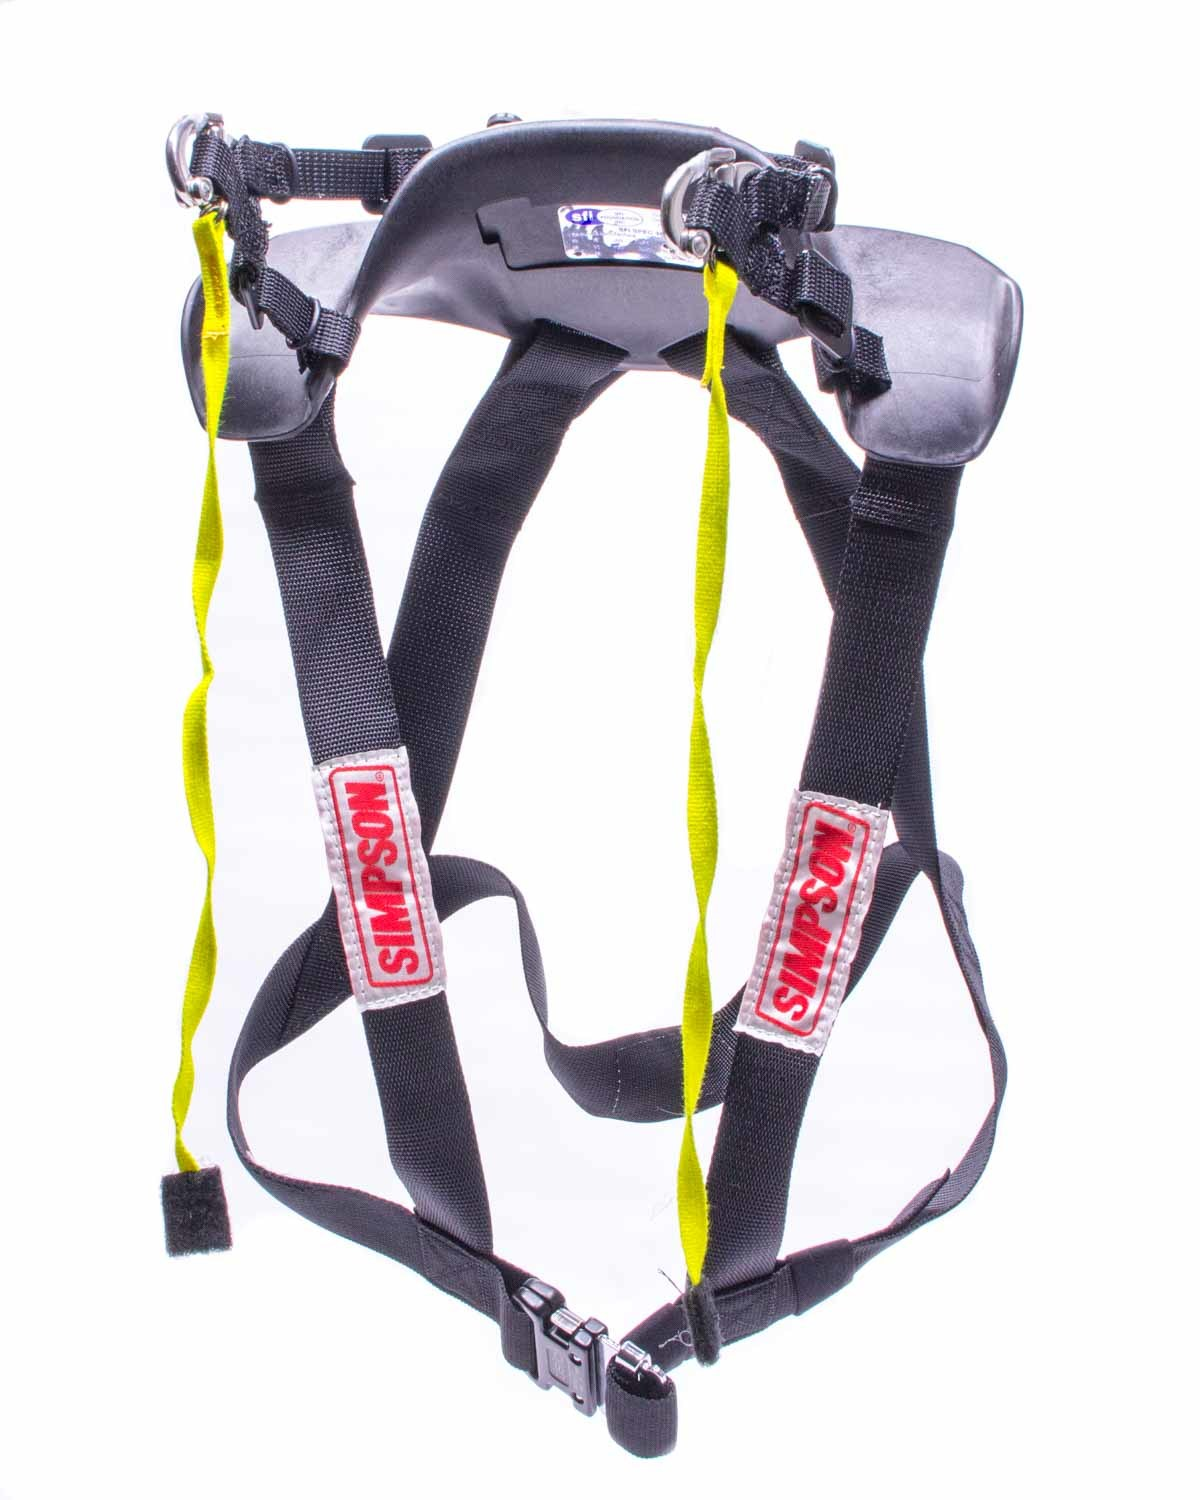 Simpson HS.XSC.11 Head and Neck Support, Hybrid Sport, SFI 38.1, Plastic, Black, Youth X-Small, Kit